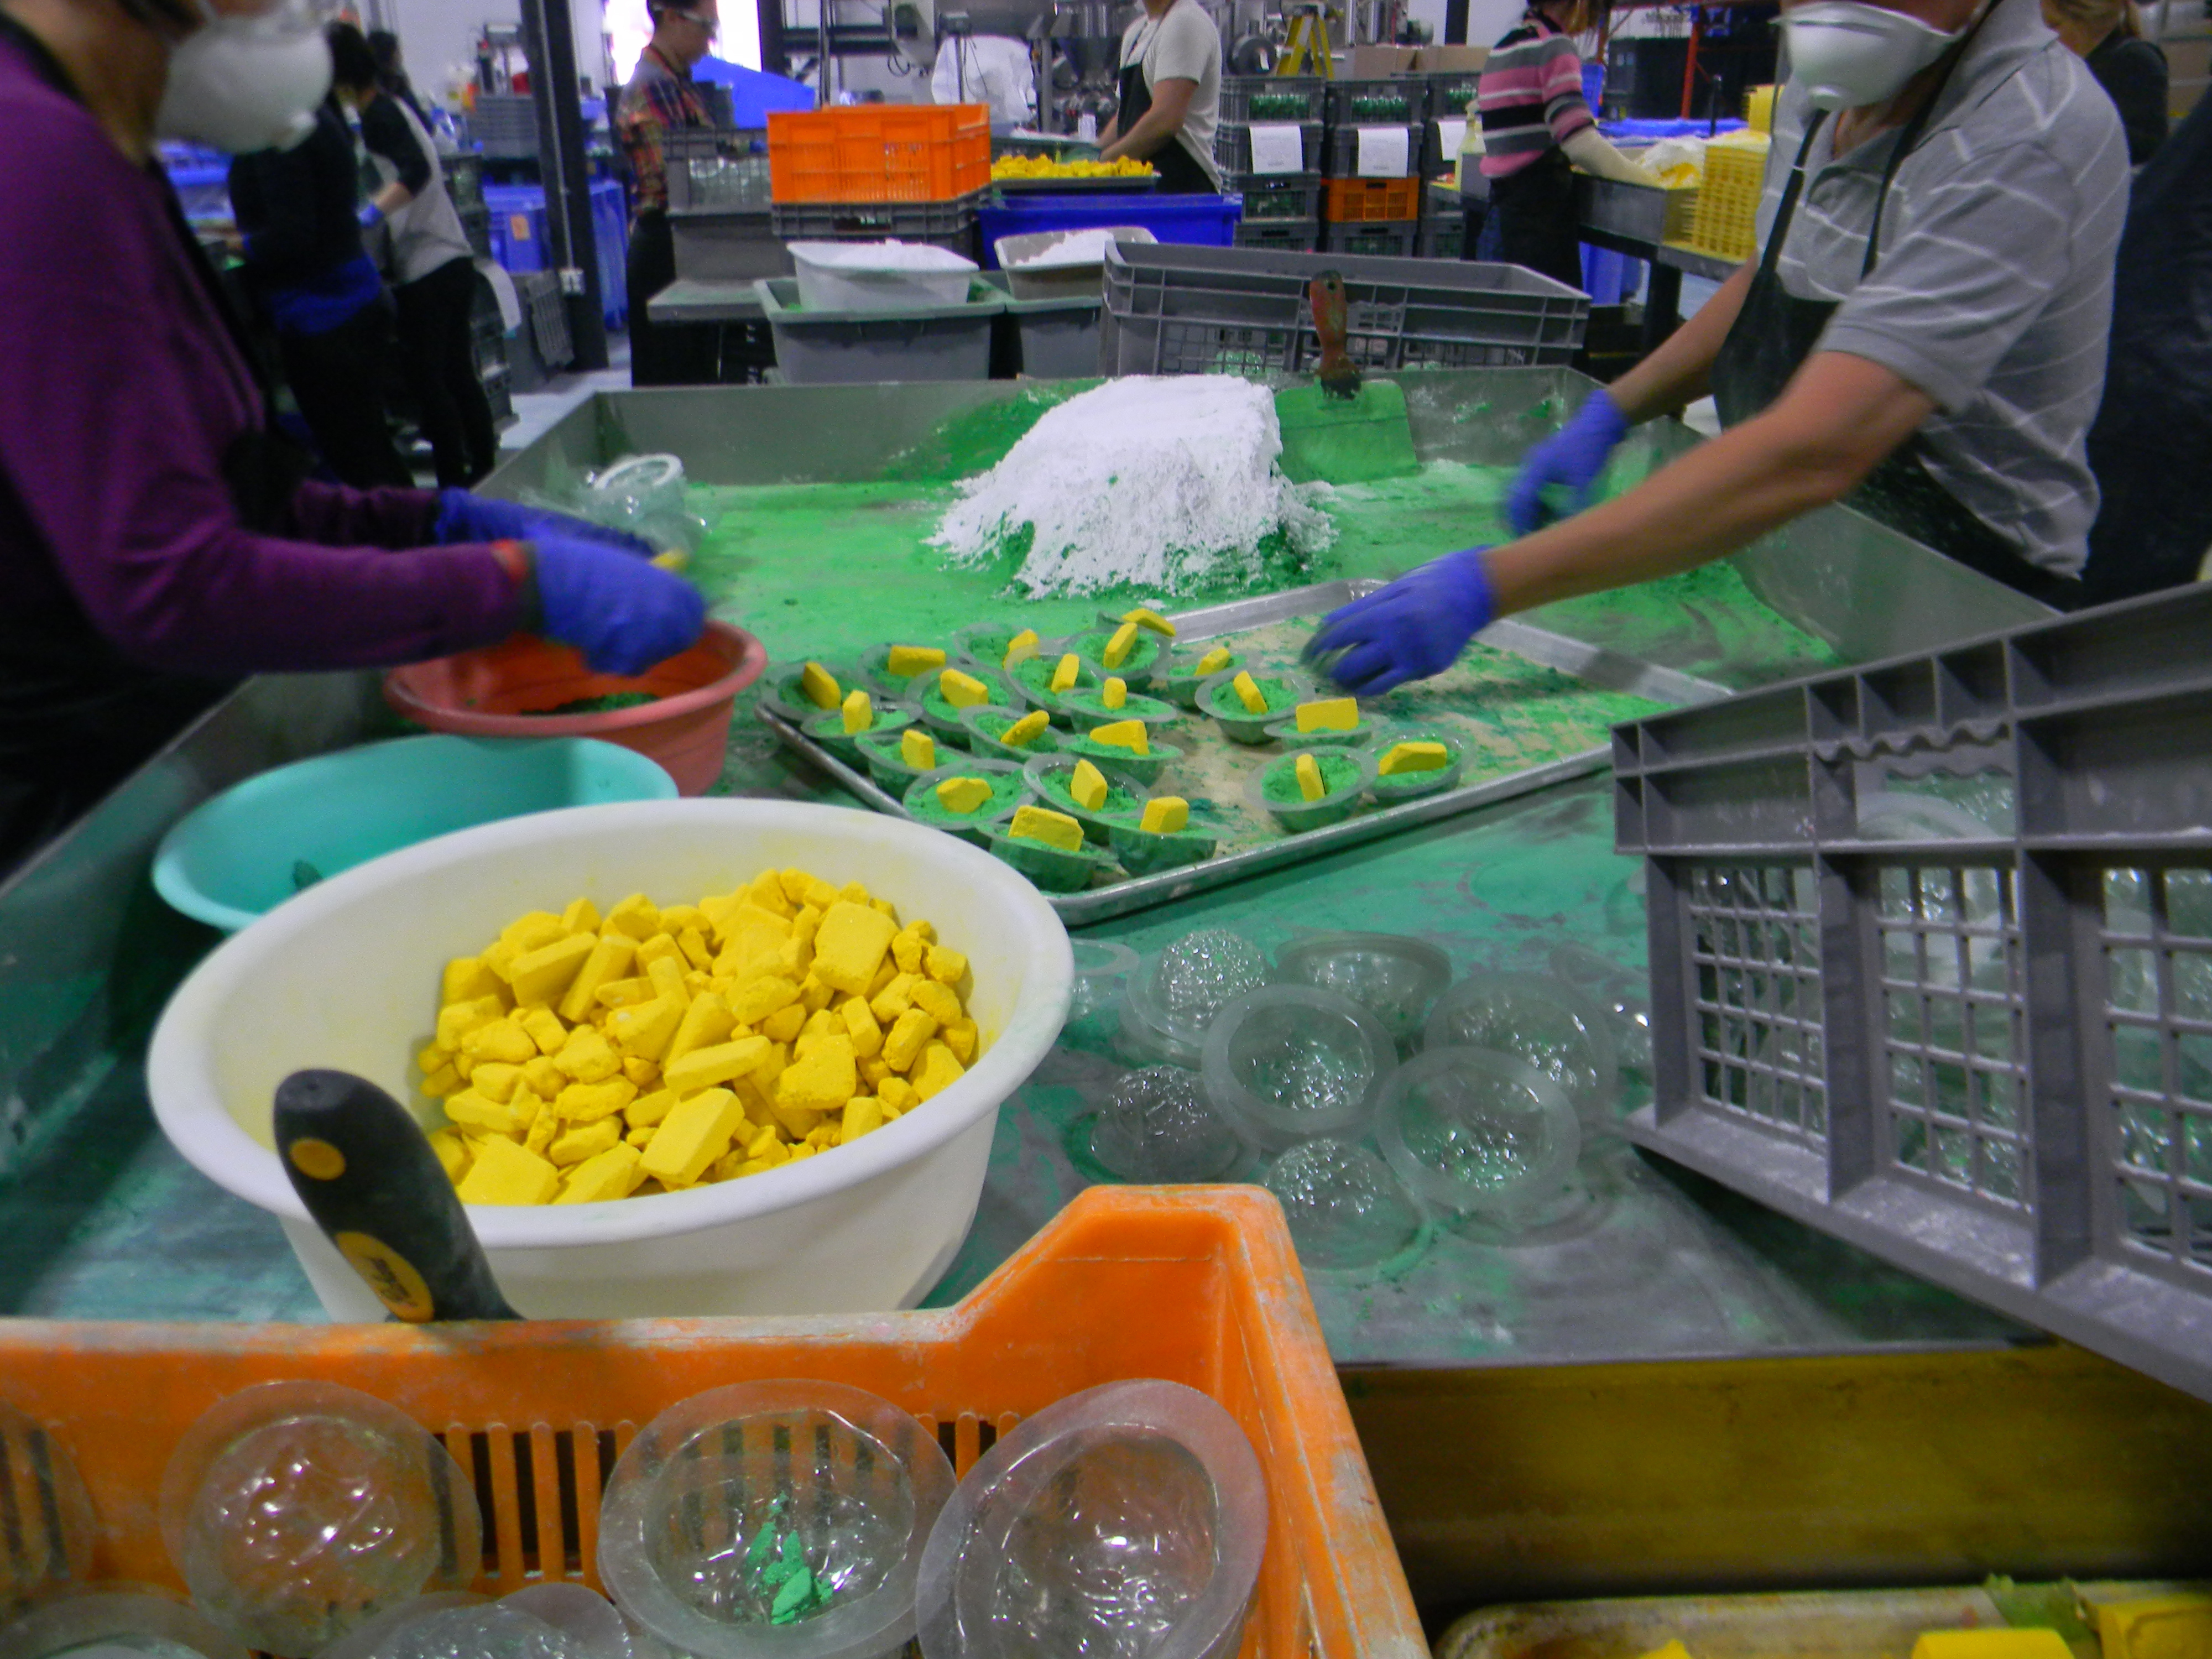 Workers assemble bath products in the Lush Cosmetics factory in Etobicoke, Ont.